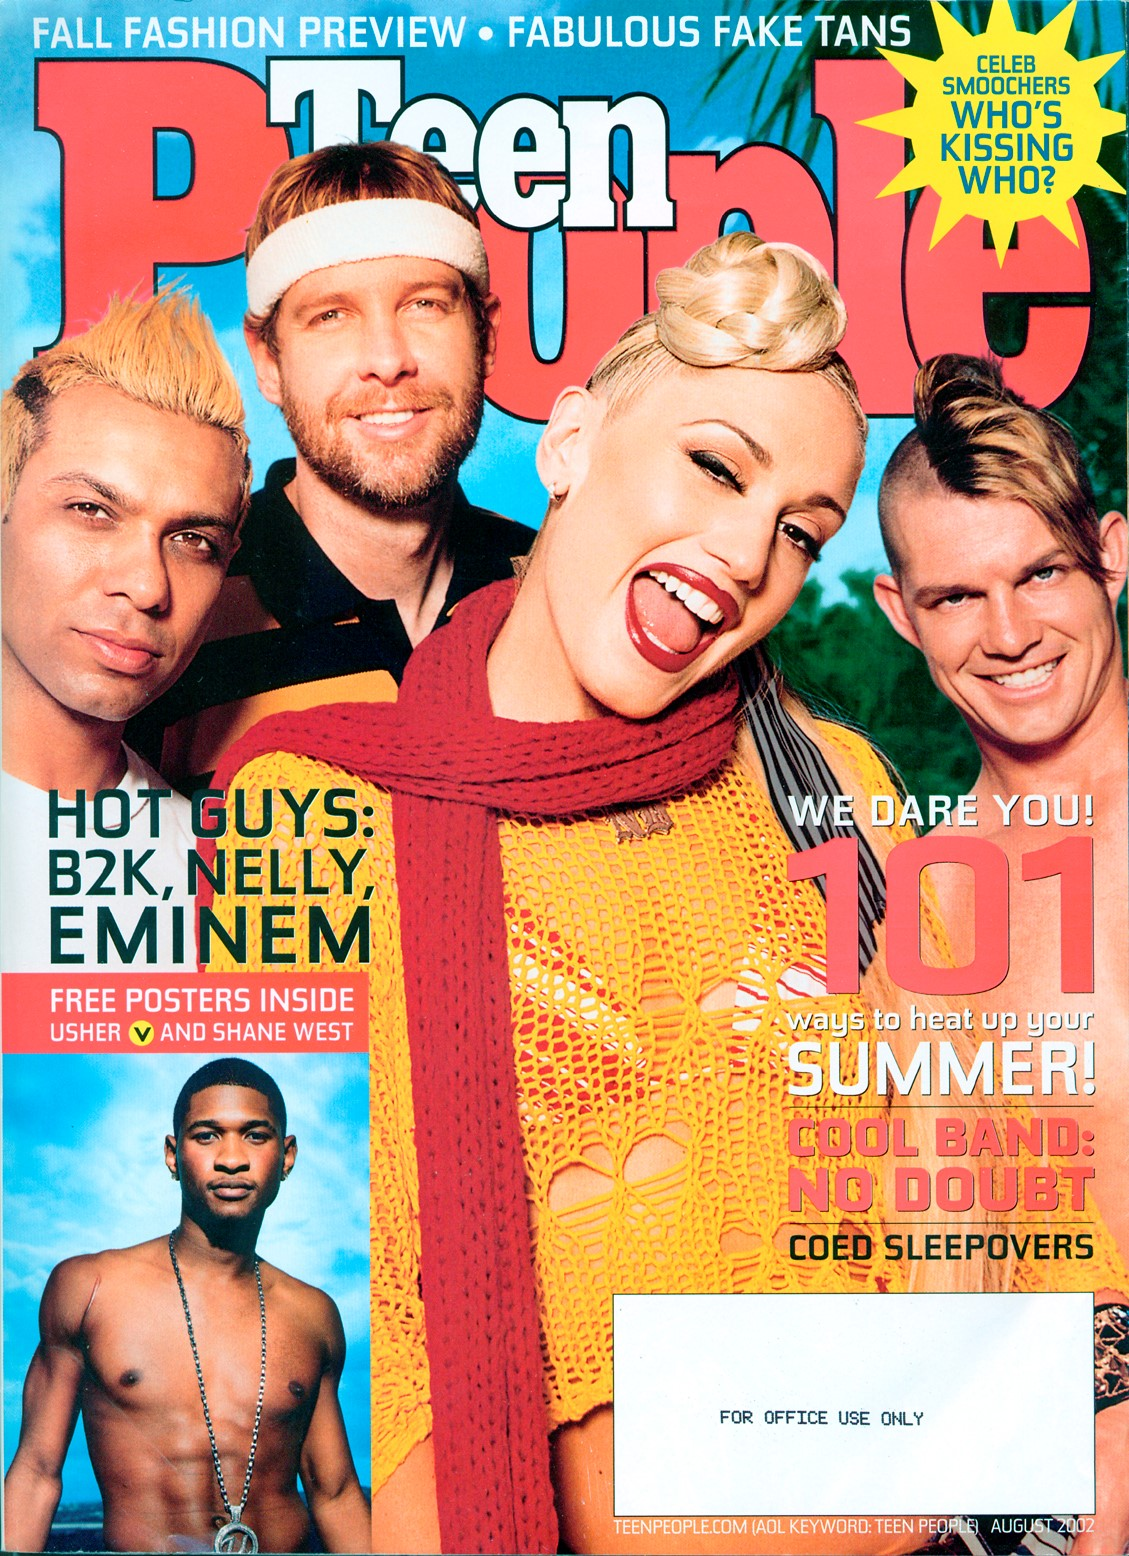 No Doubt Cover.jpg